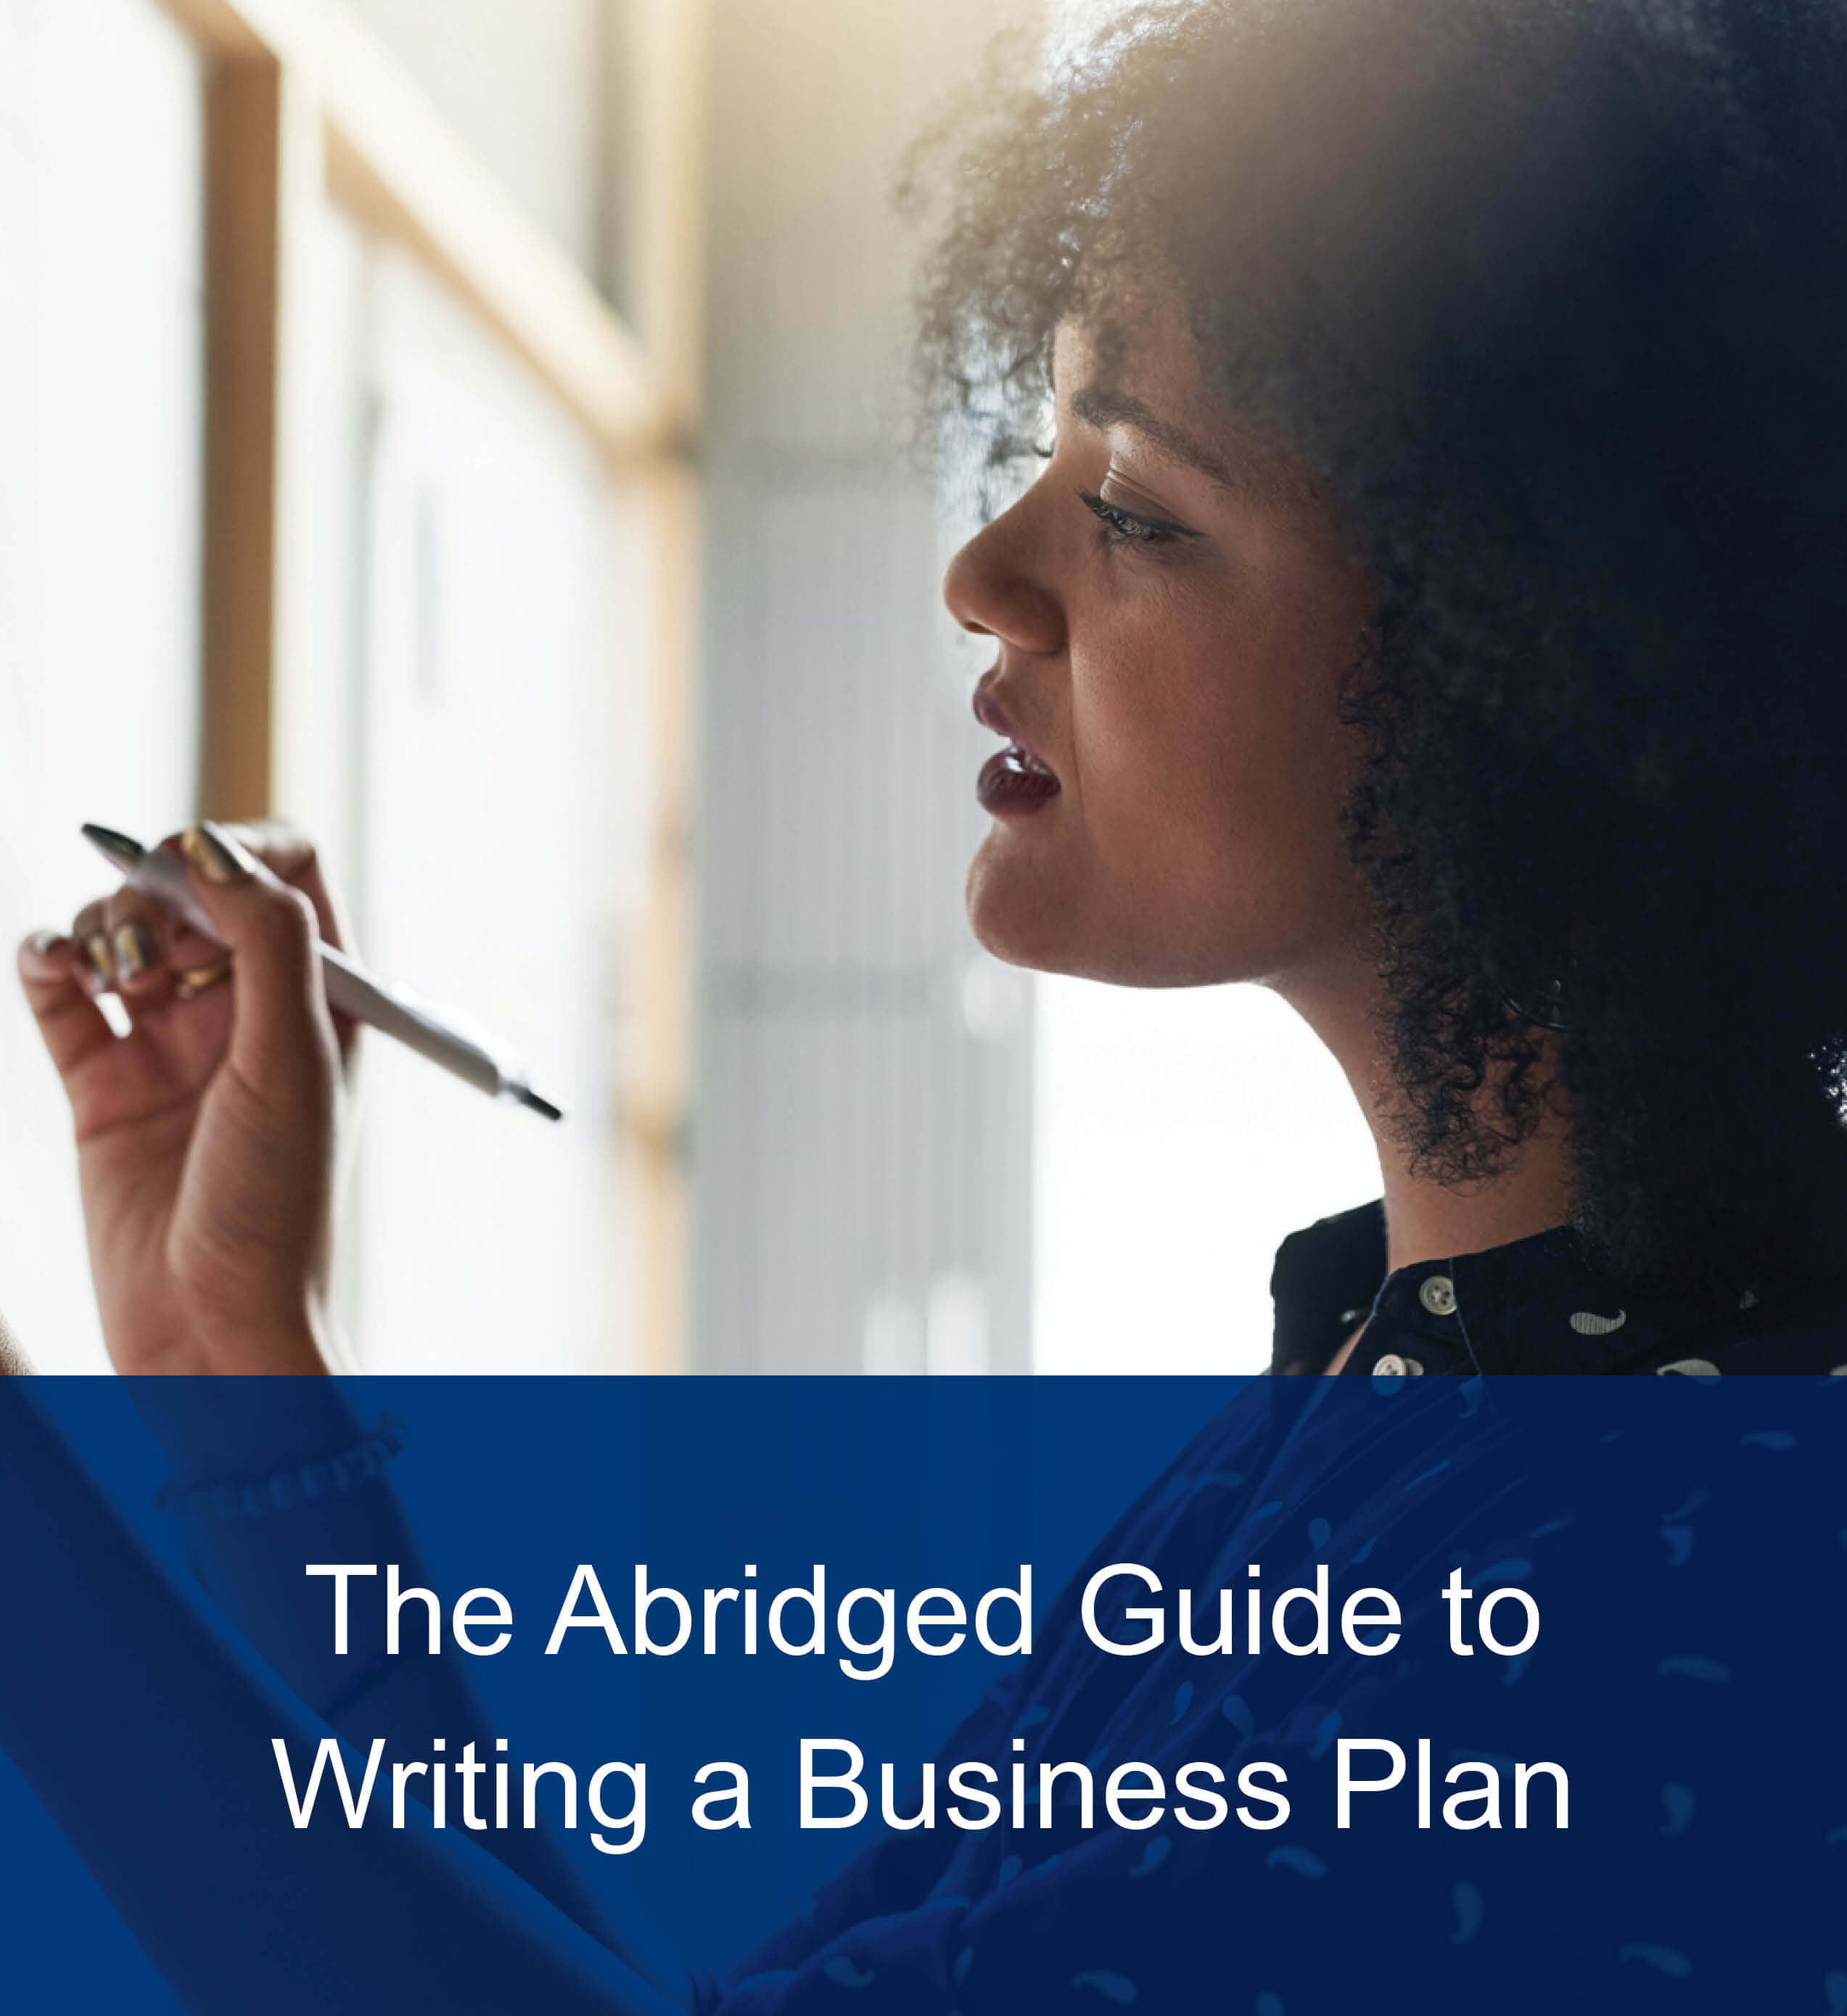 The Abridged Guide to Writing a Business Plan